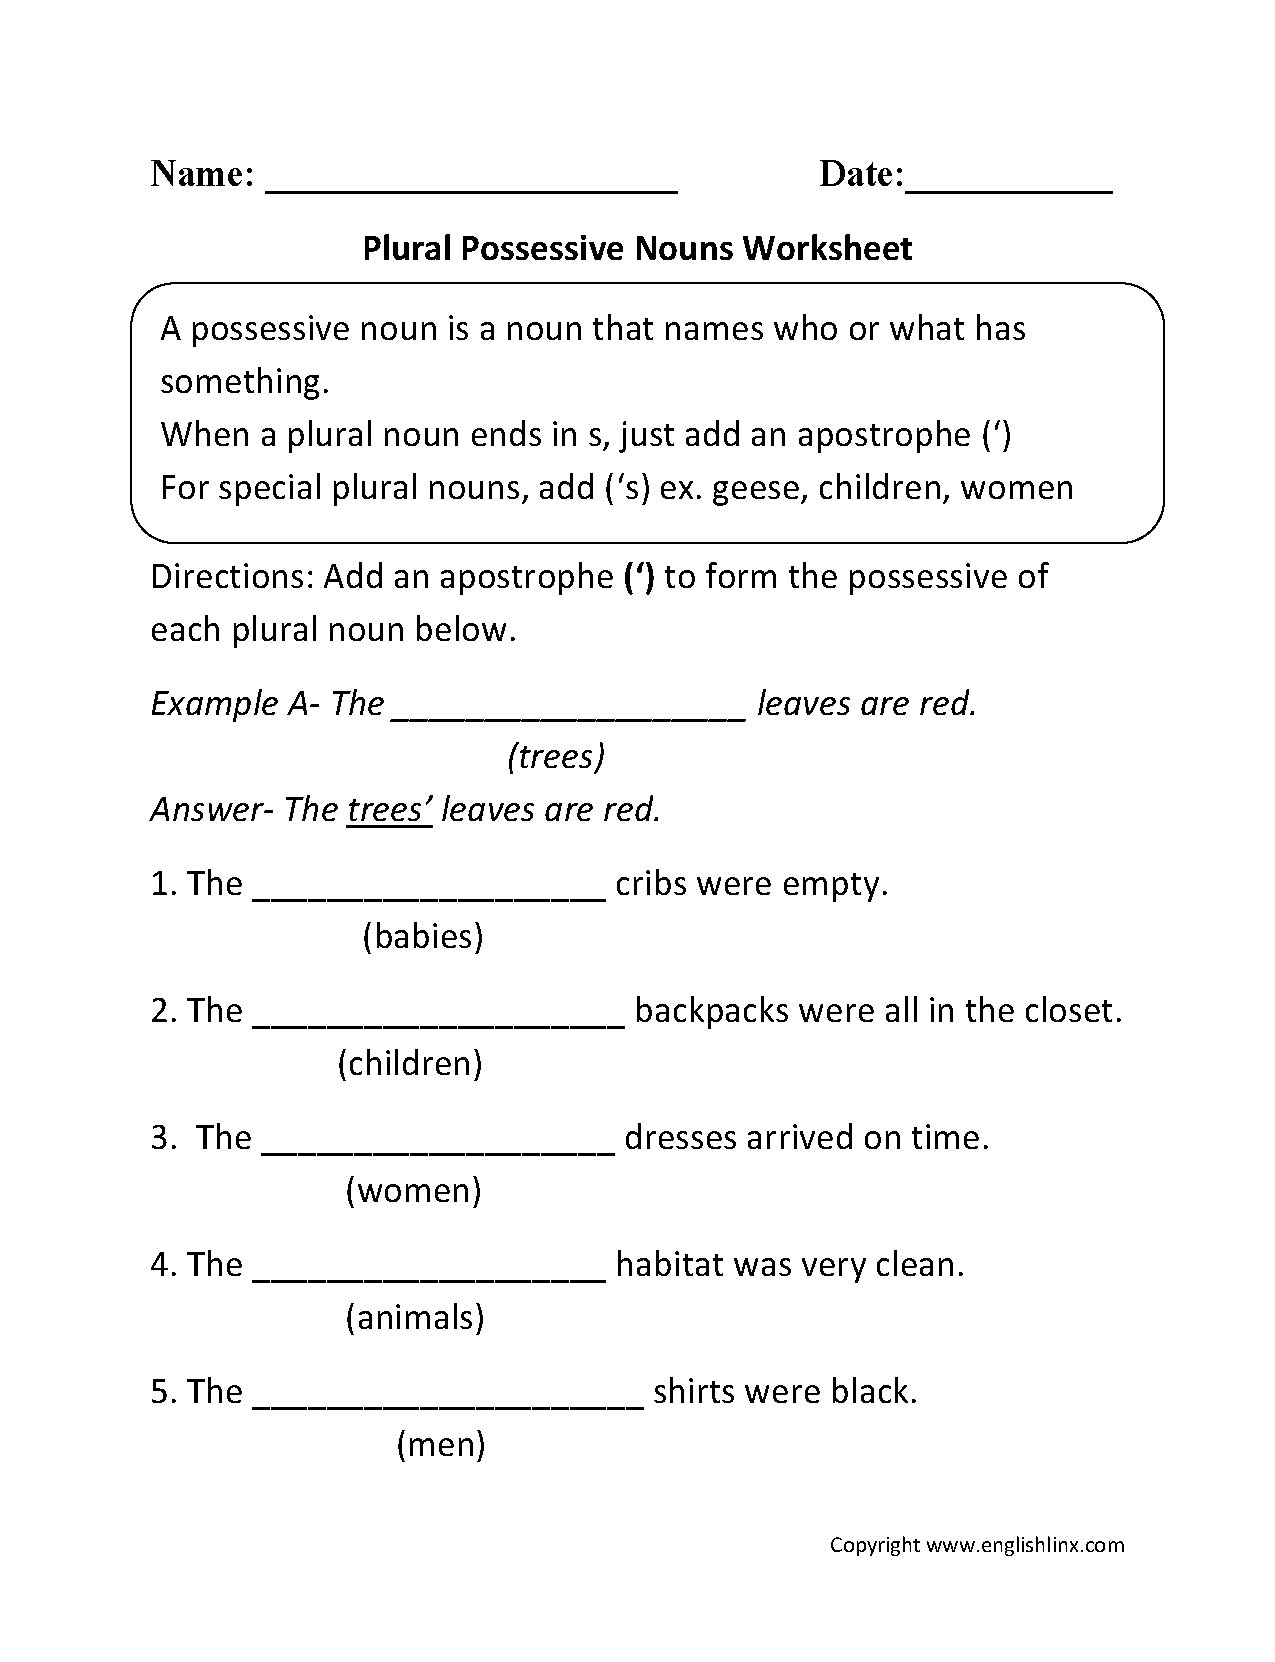 Aldiablosus  Gorgeous Nouns Worksheets  Possessive Nouns Worksheets With Lovely Possessive Nouns Worksheets With Attractive Subtraction Kindergarten Worksheets Also Worksheets For Th Grade Math In Addition Free Middle School Math Worksheets And Telling Time Printable Worksheets As Well As Baby Animal Names Worksheet Additionally  Times Table Worksheets From Englishlinxcom With Aldiablosus  Lovely Nouns Worksheets  Possessive Nouns Worksheets With Attractive Possessive Nouns Worksheets And Gorgeous Subtraction Kindergarten Worksheets Also Worksheets For Th Grade Math In Addition Free Middle School Math Worksheets From Englishlinxcom